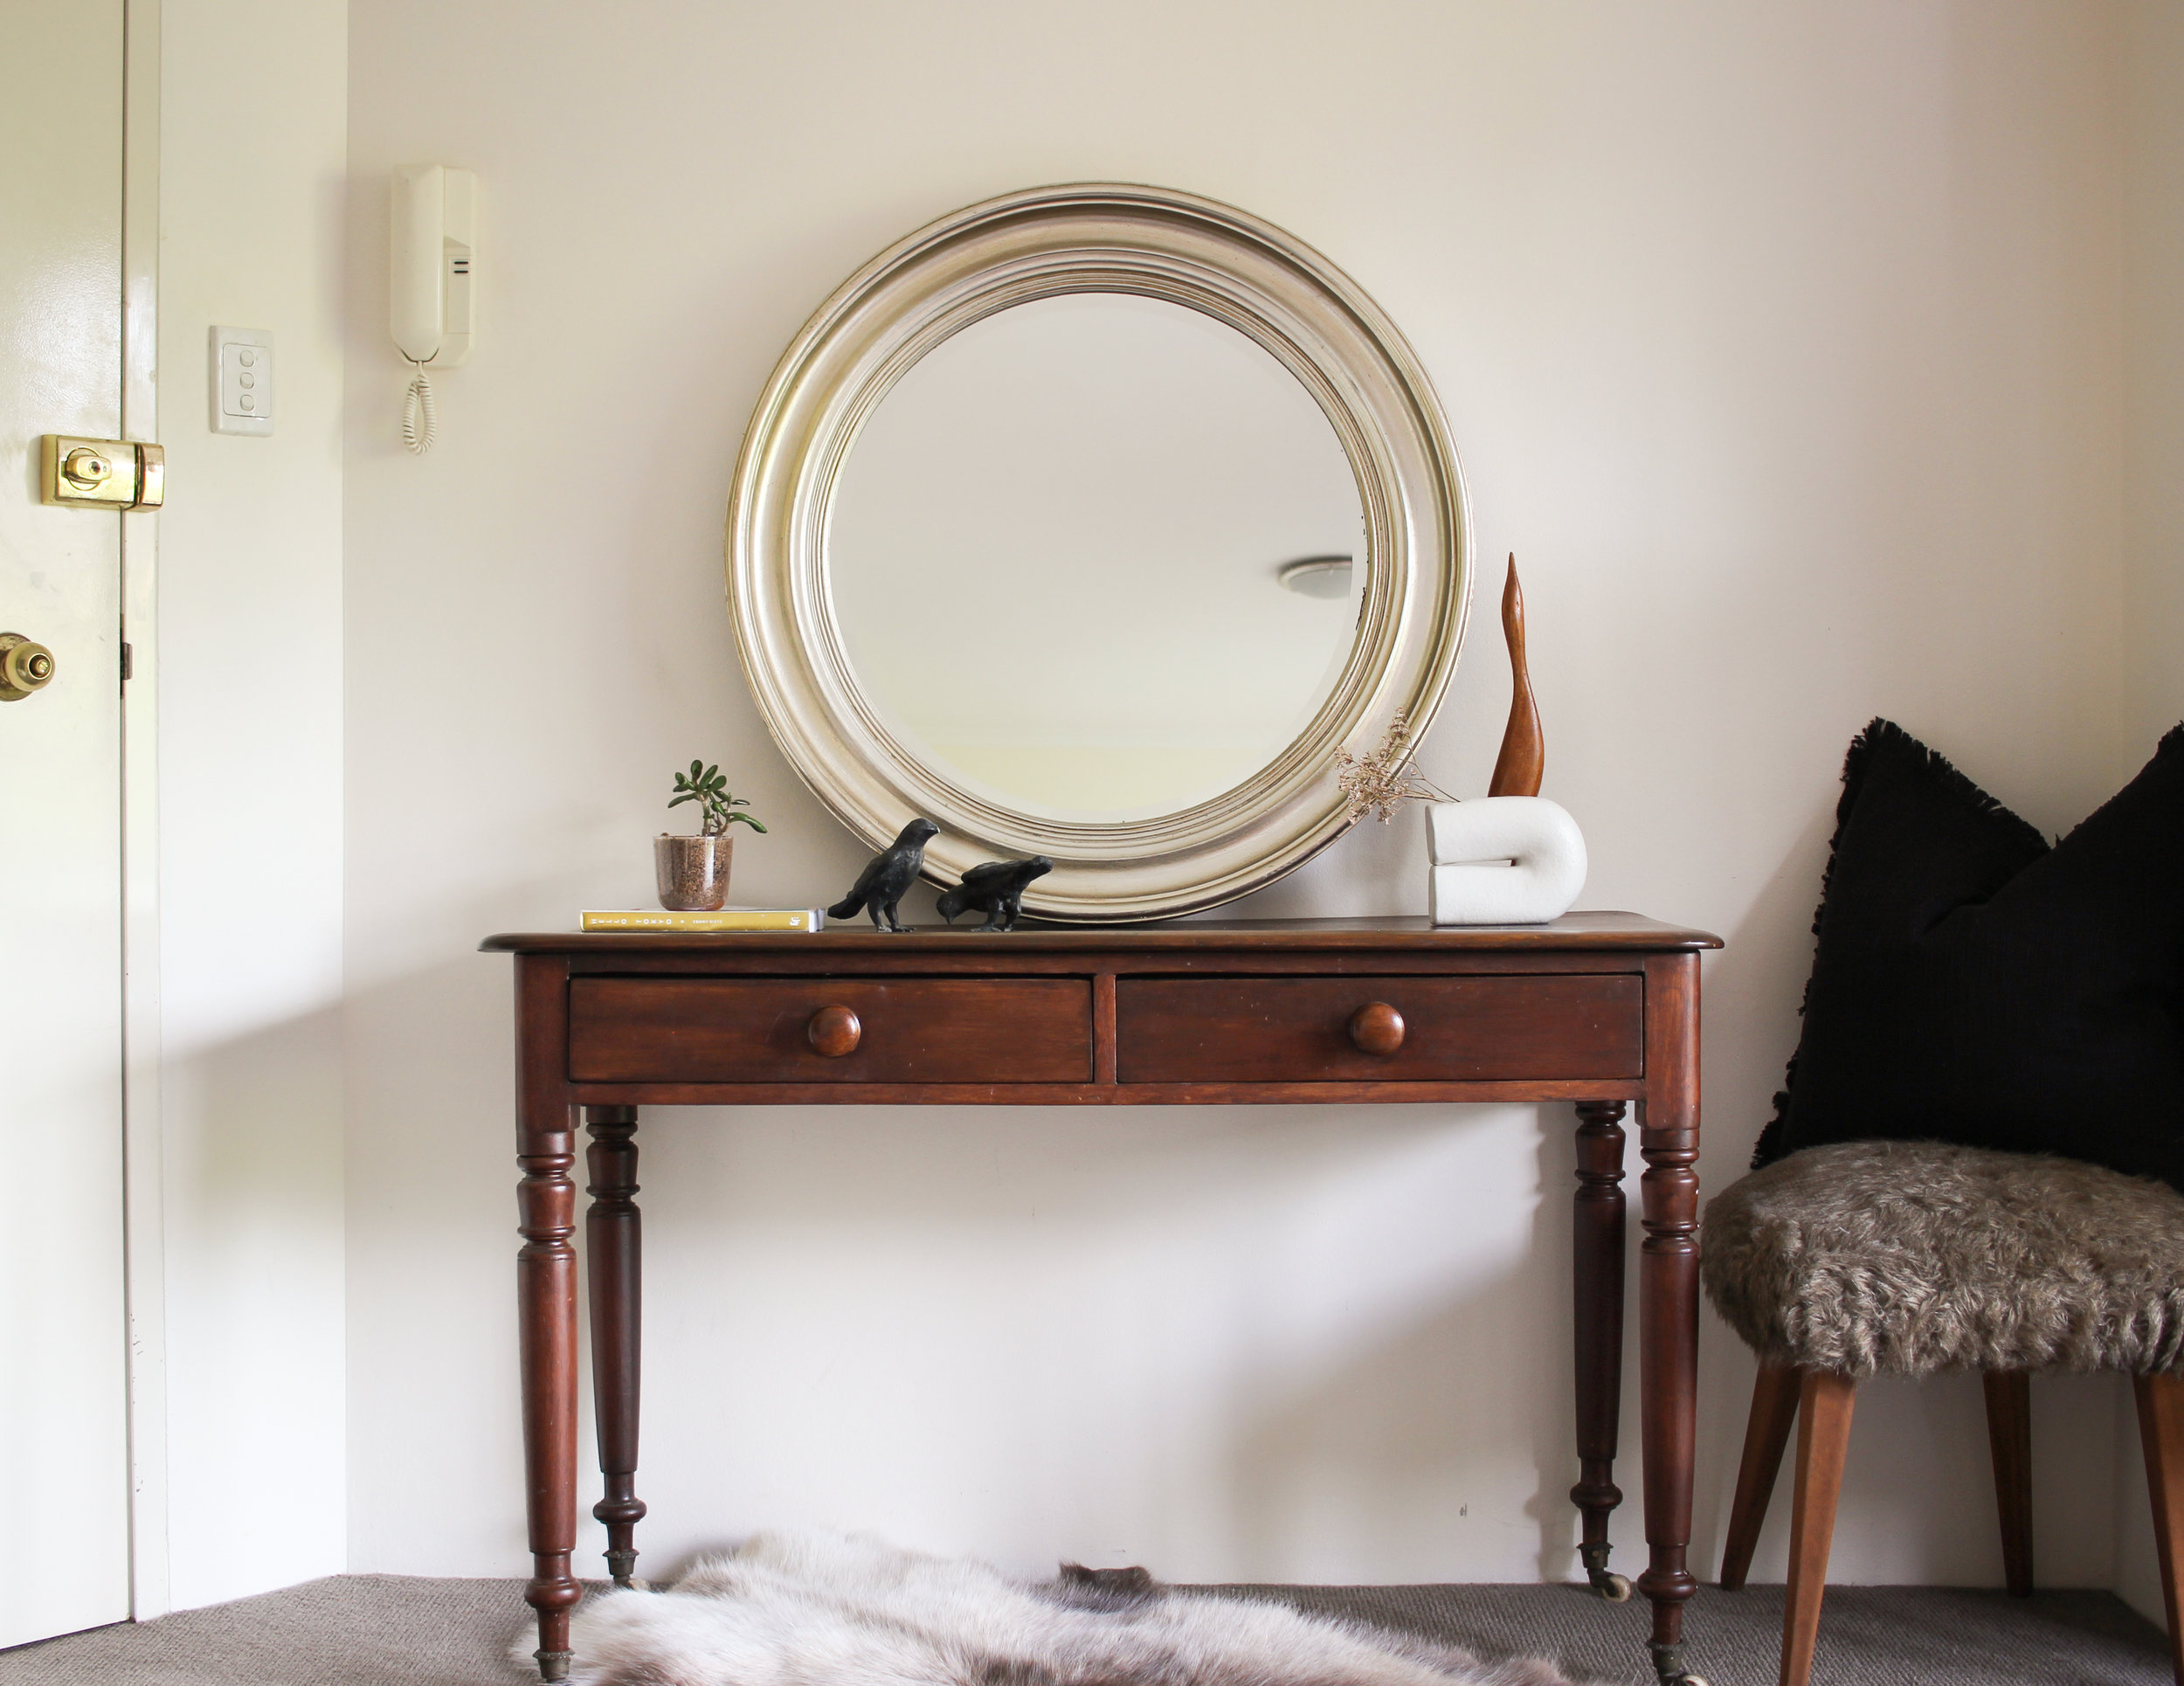 MOVING THIS TABLE NEAR THE FRONT DOOR & STYLING IT WITH A MIRROR & DECOR PIECES TRANSFORMED IT INTO A CONSOLE TABLE.